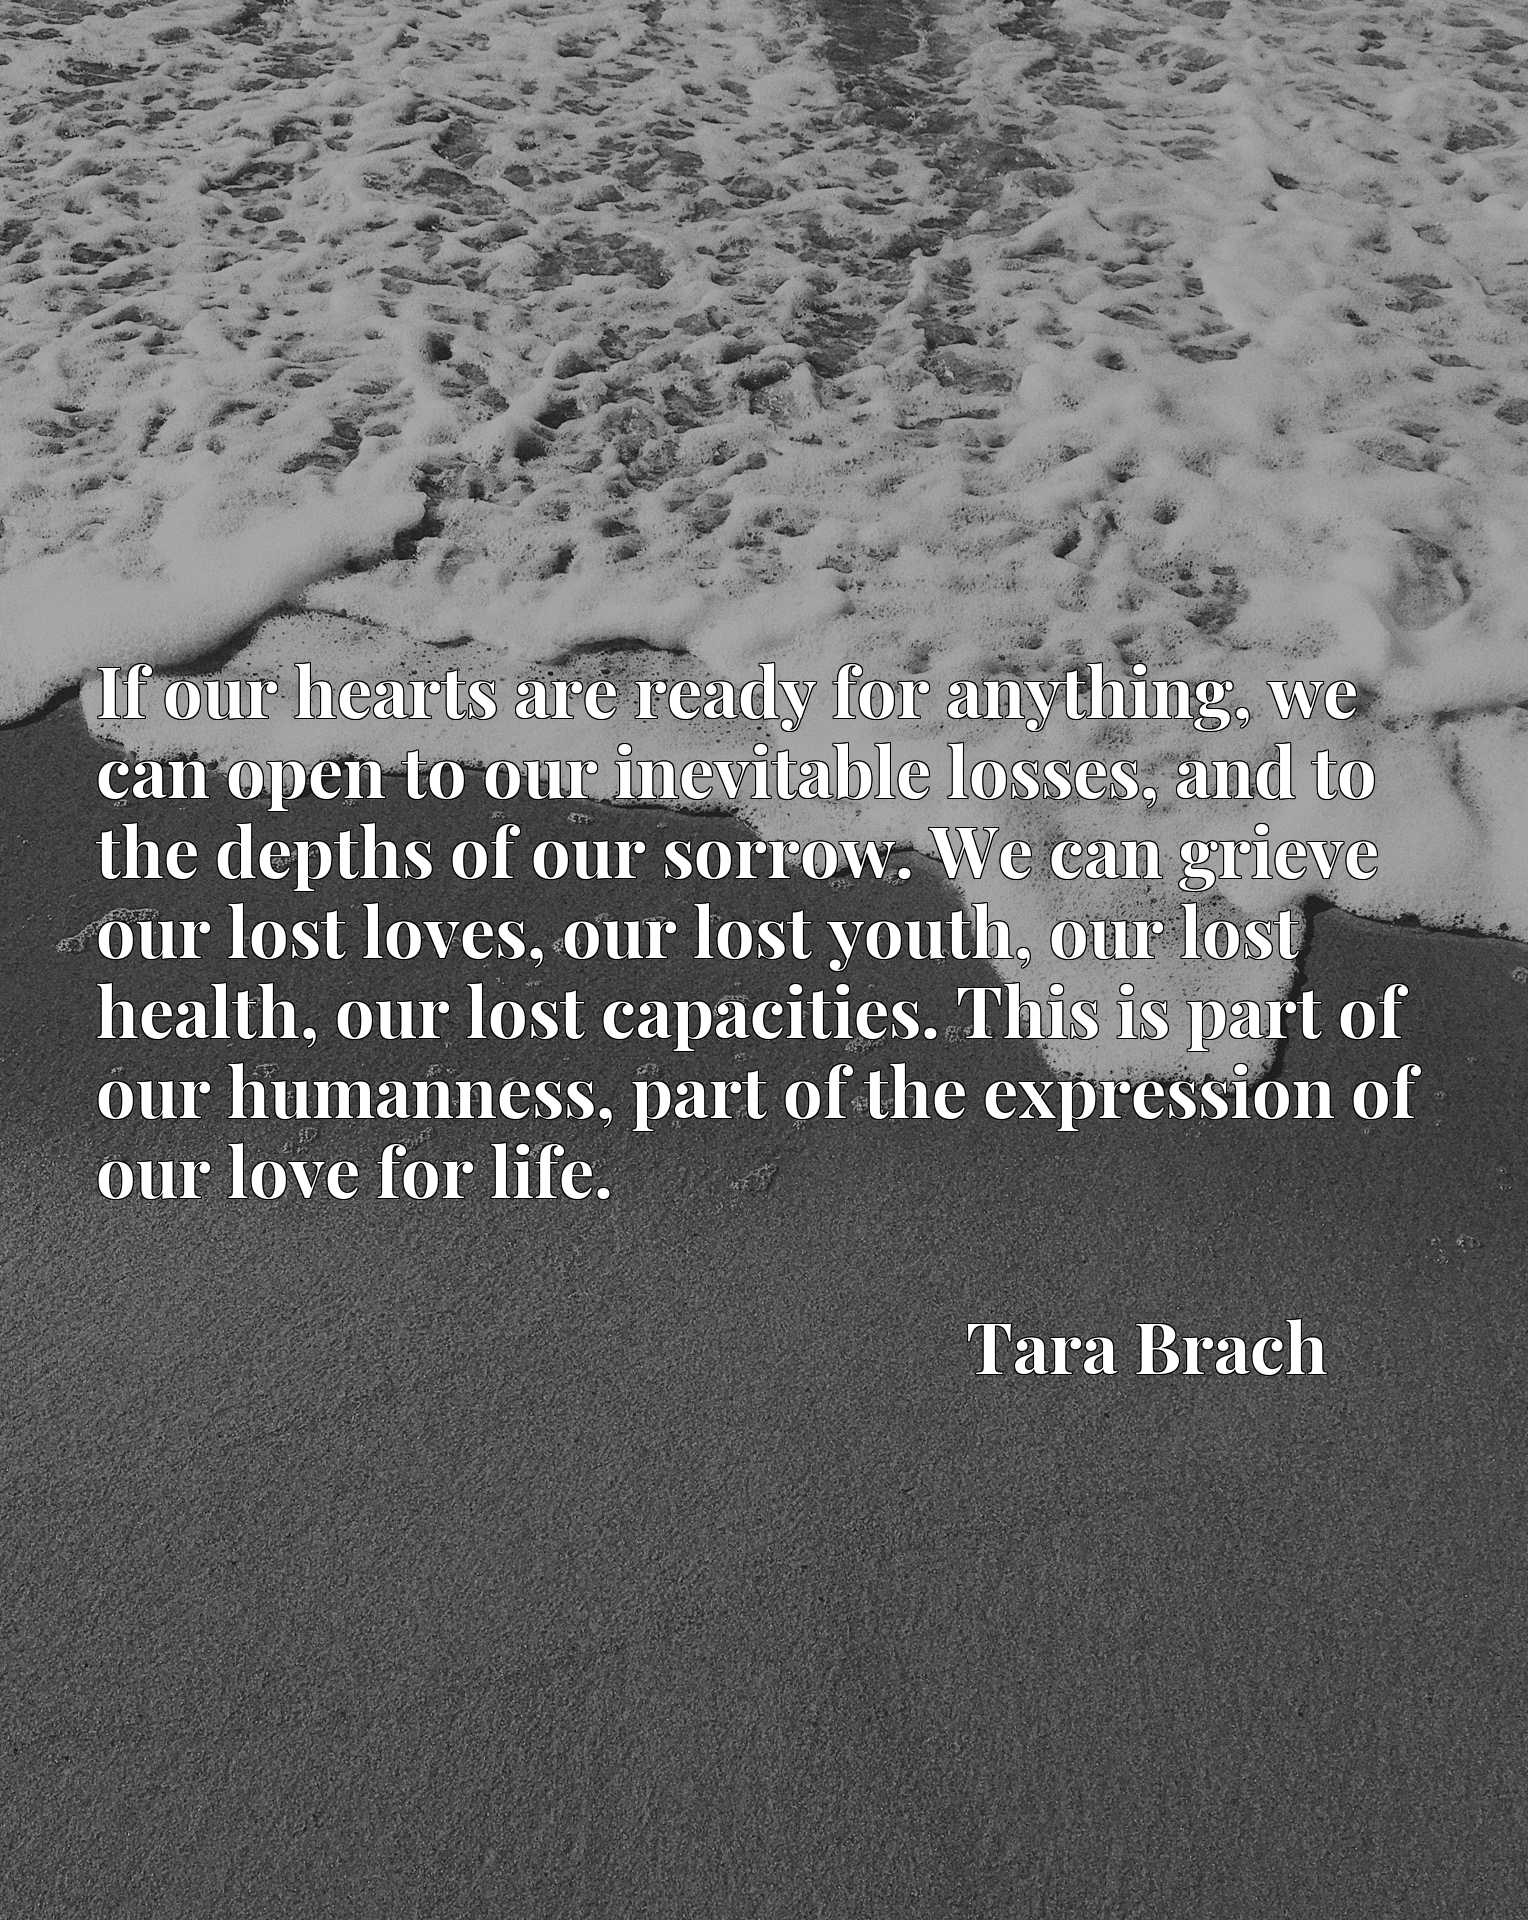 If our hearts are ready for anything, we can open to our inevitable losses, and to the depths of our sorrow. We can grieve our lost loves, our lost youth, our lost health, our lost capacities. This is part of our humanness, part of the expression of our love for life.